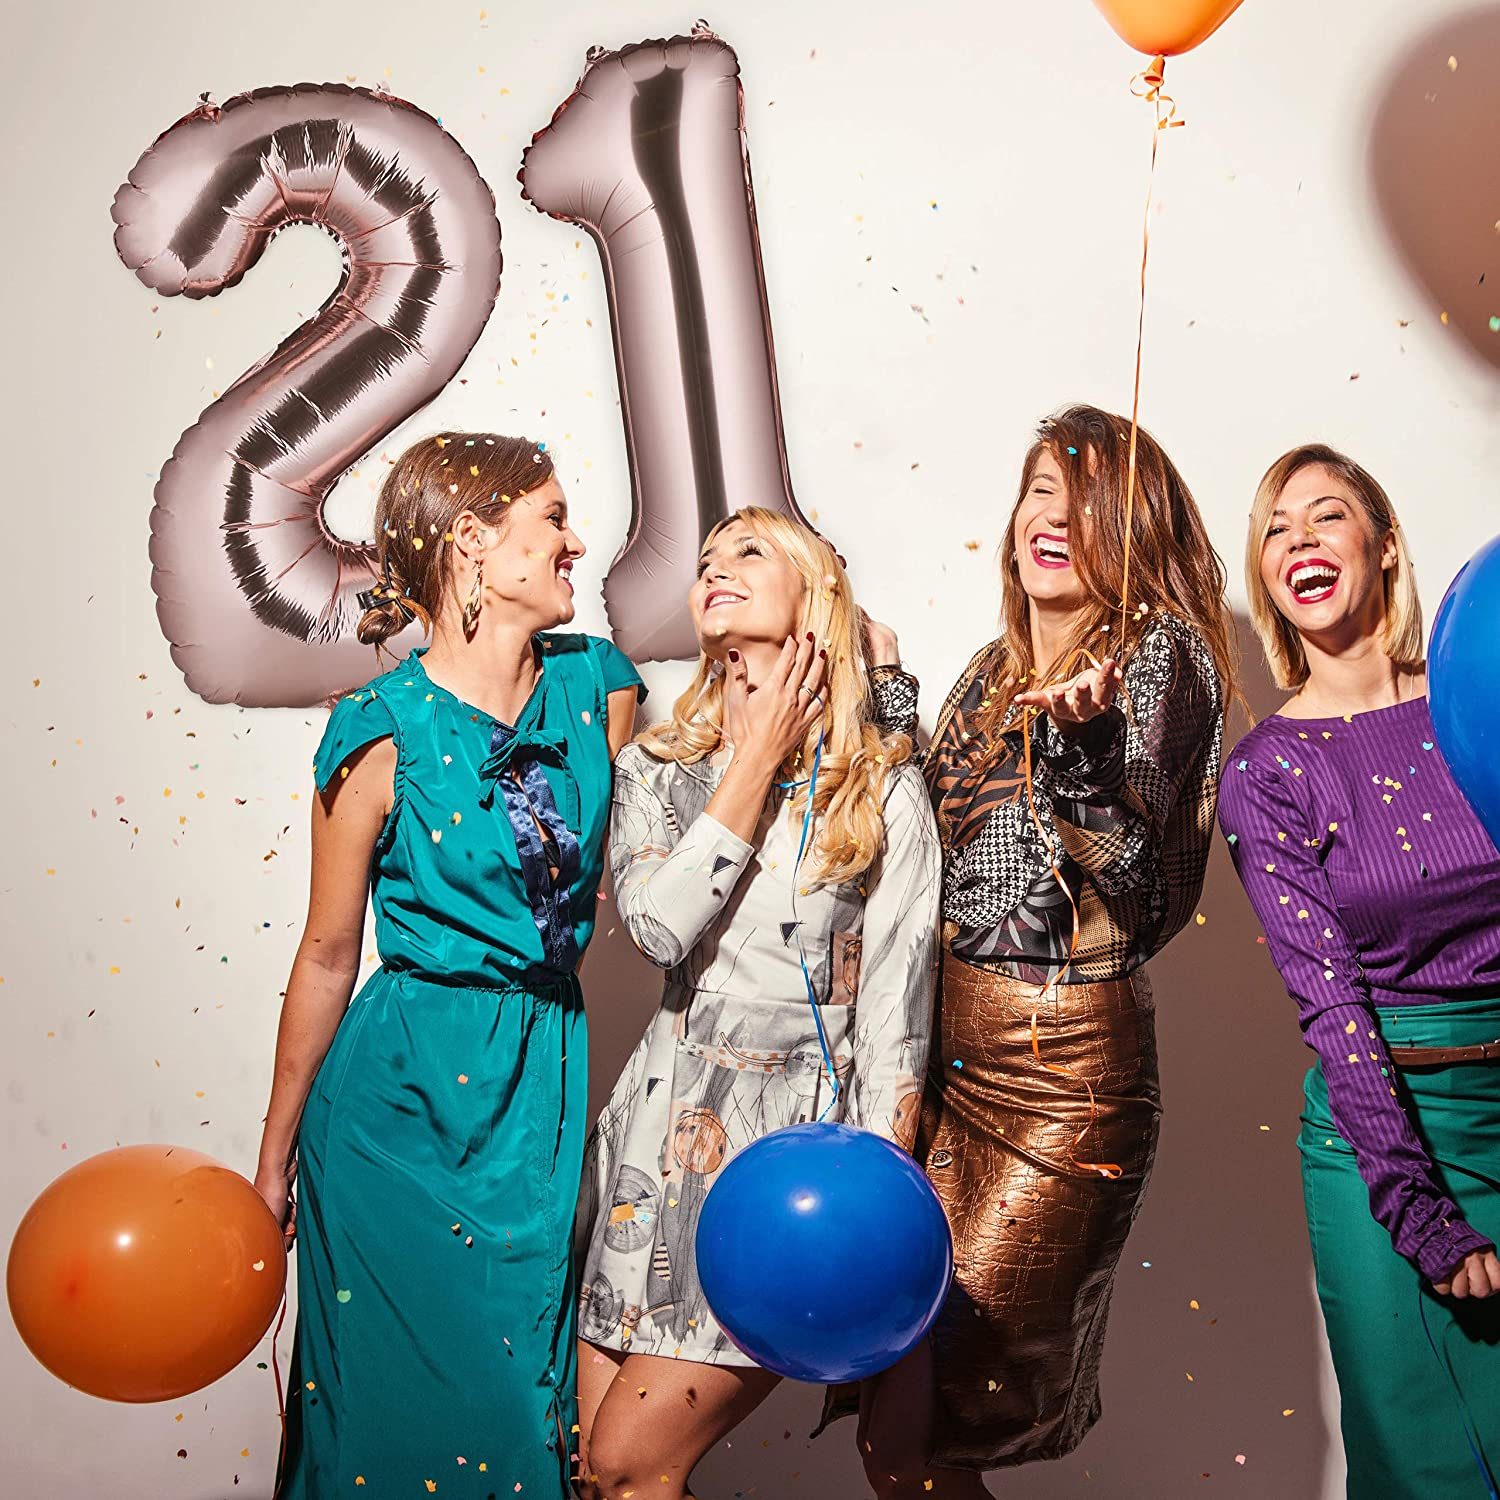 Jumbo 21st Birthday To Hang 85-100 cm One Size Relaxdays Foil 21 XXL Gold Number Balloons